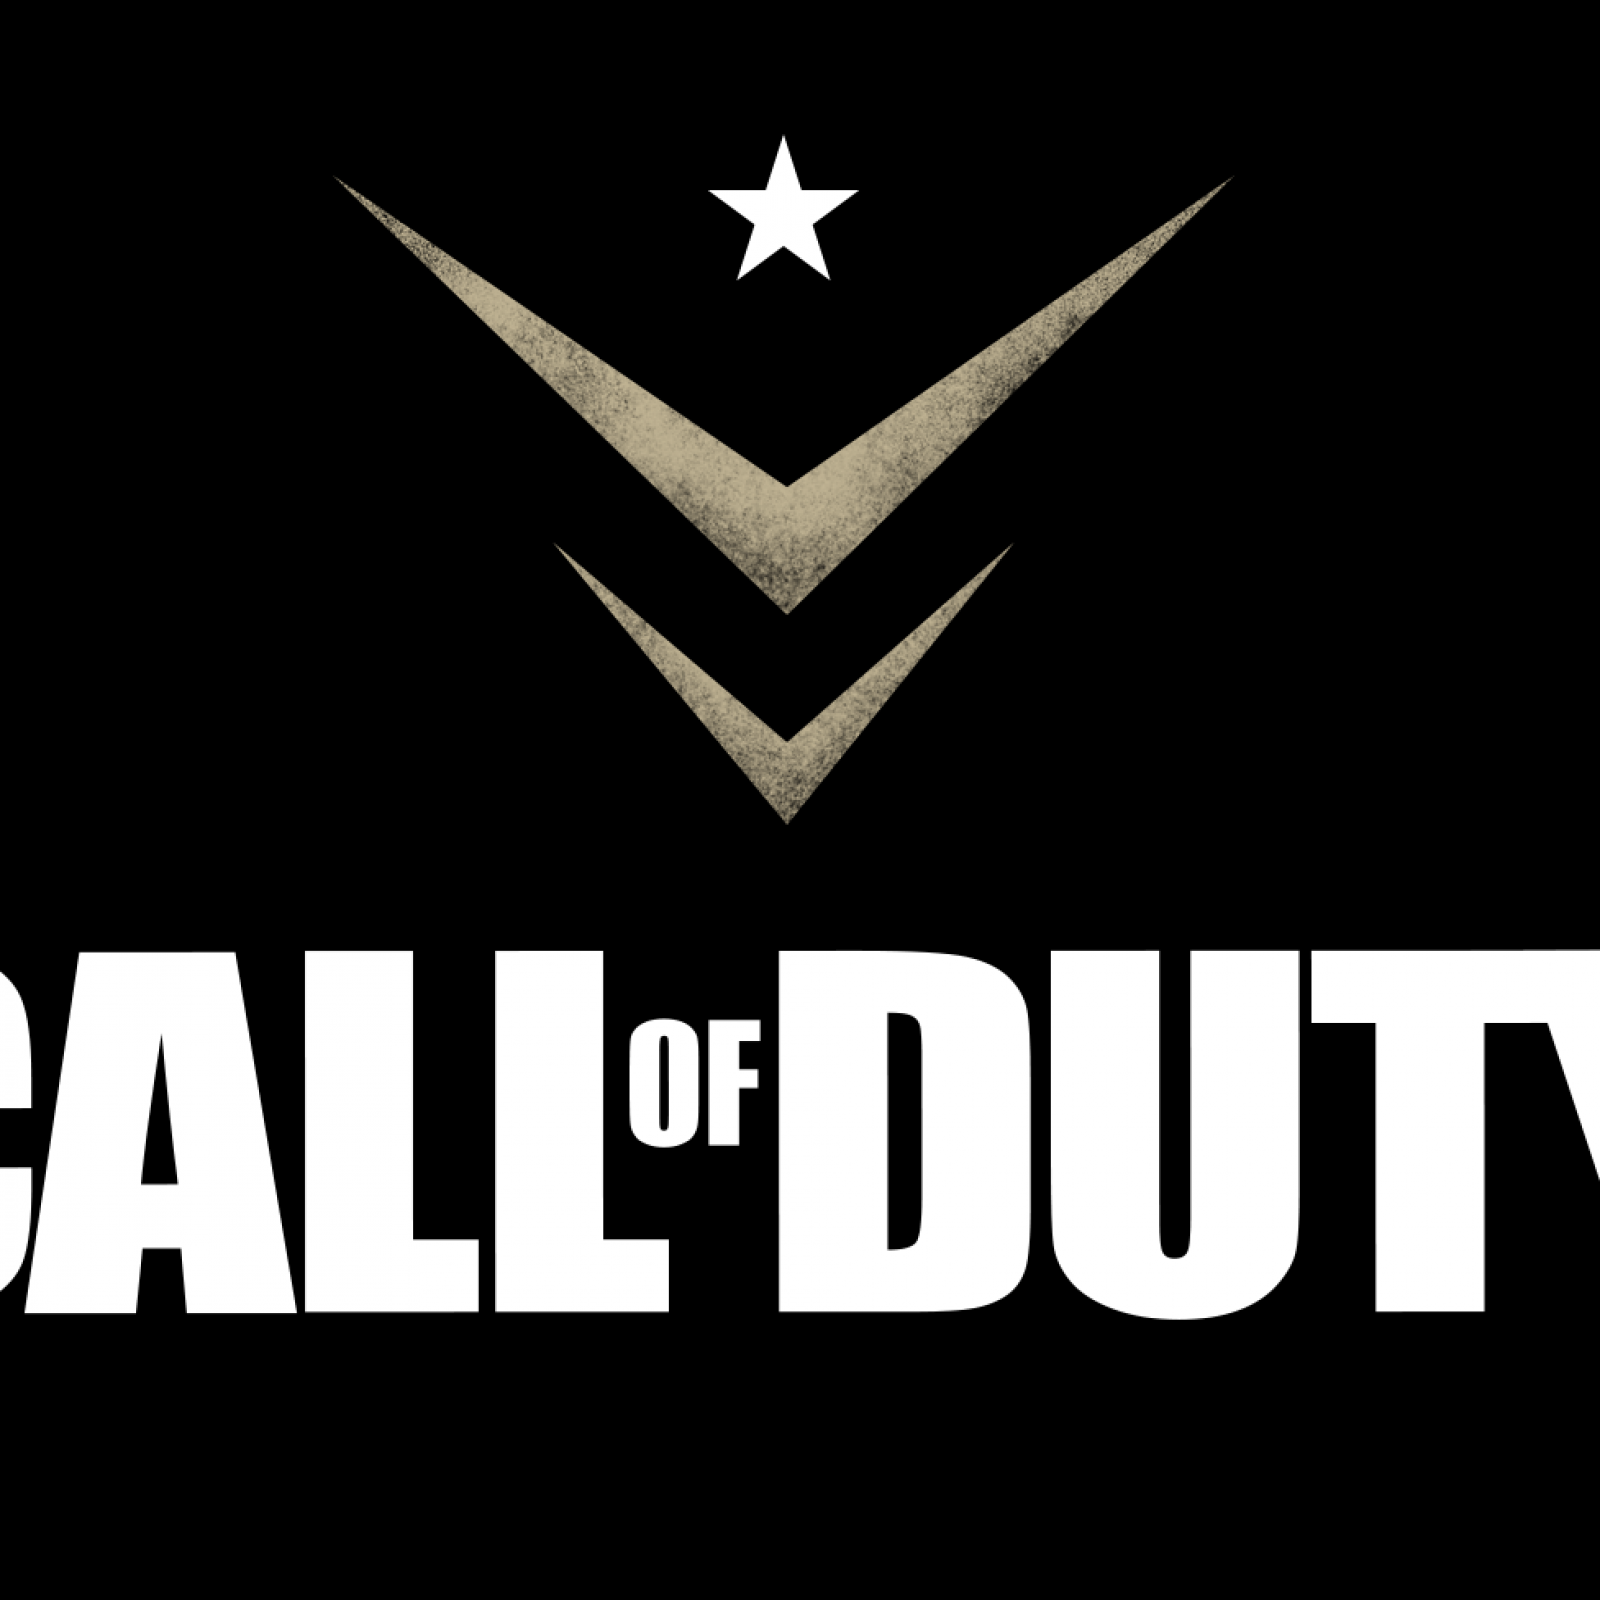 Call of Duty' Alexa Skill Guide - How to Install & List of